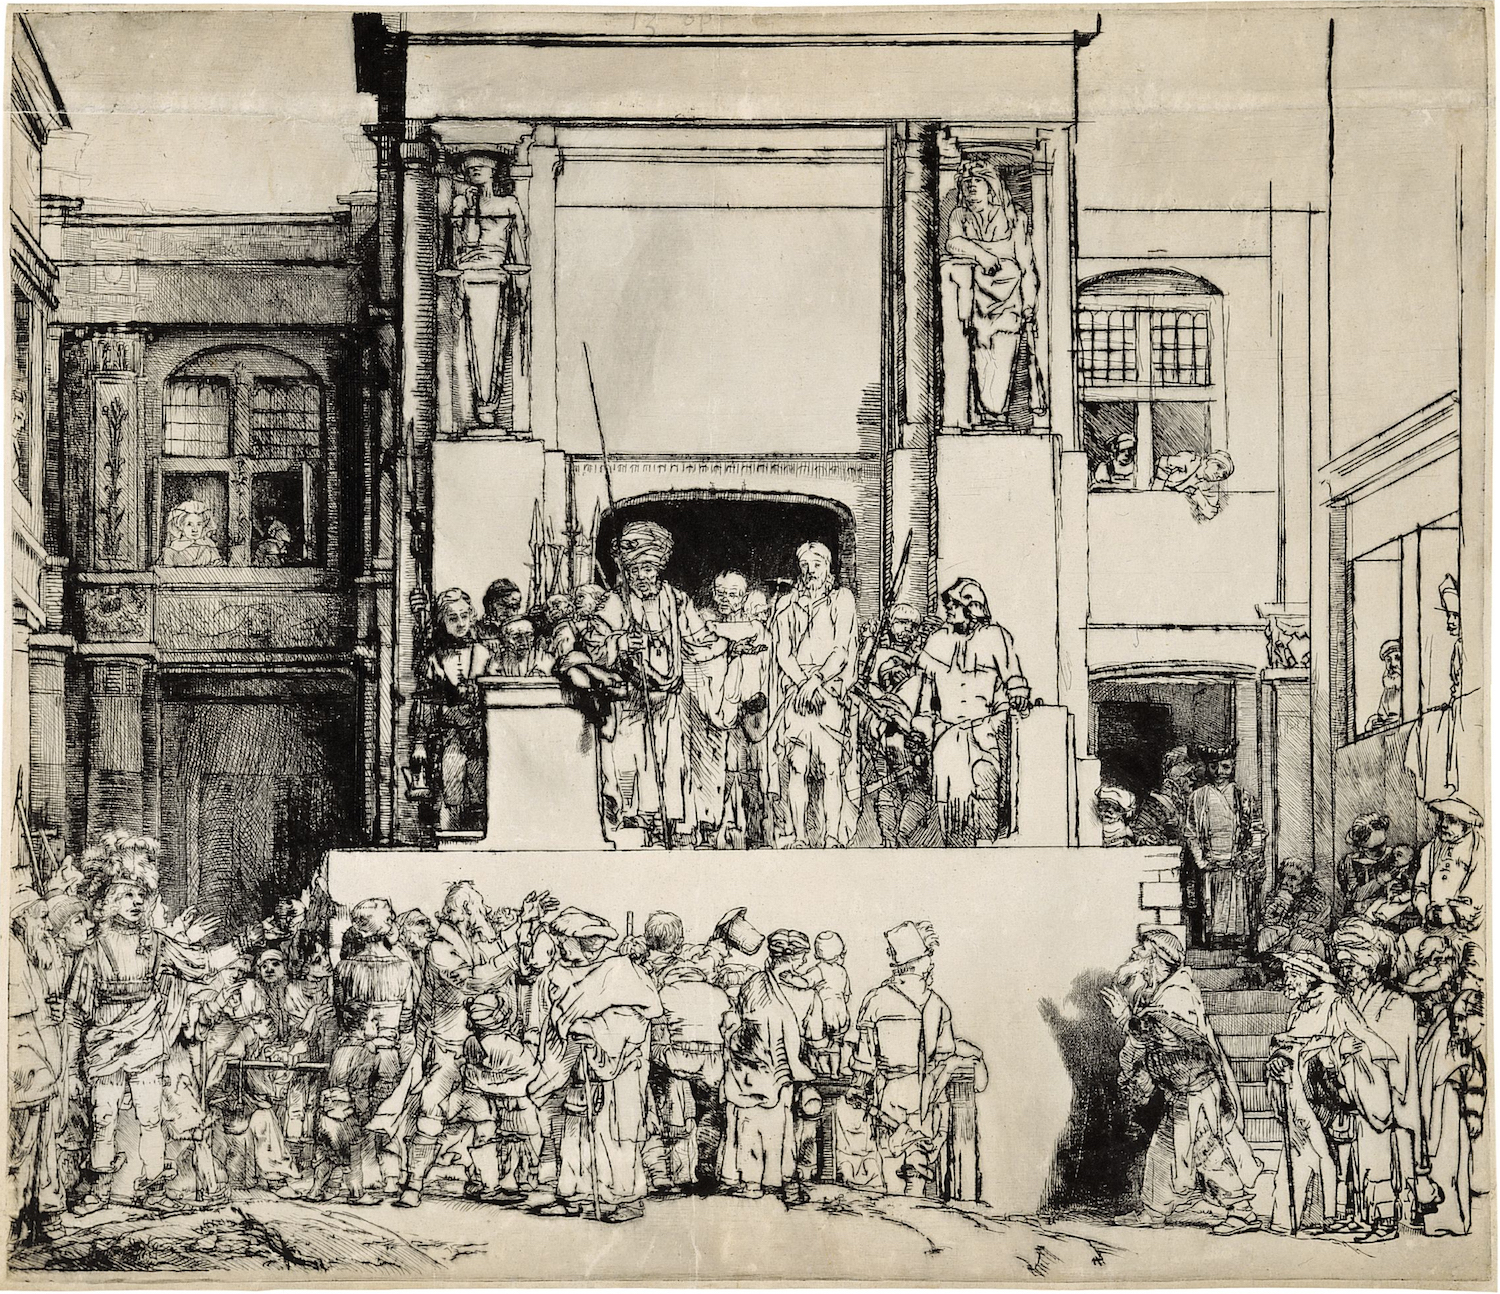 """""""Ecce Homo"""" or """"Christ Presented to the People,"""" by Rembrandt van Rijn (1655). Notice the stiff symmetry of the """"stage,"""" buildings, and arches. Several versions of this drypoint have been preserved, each showing a reworking of select details of the scene. This image is from here ."""